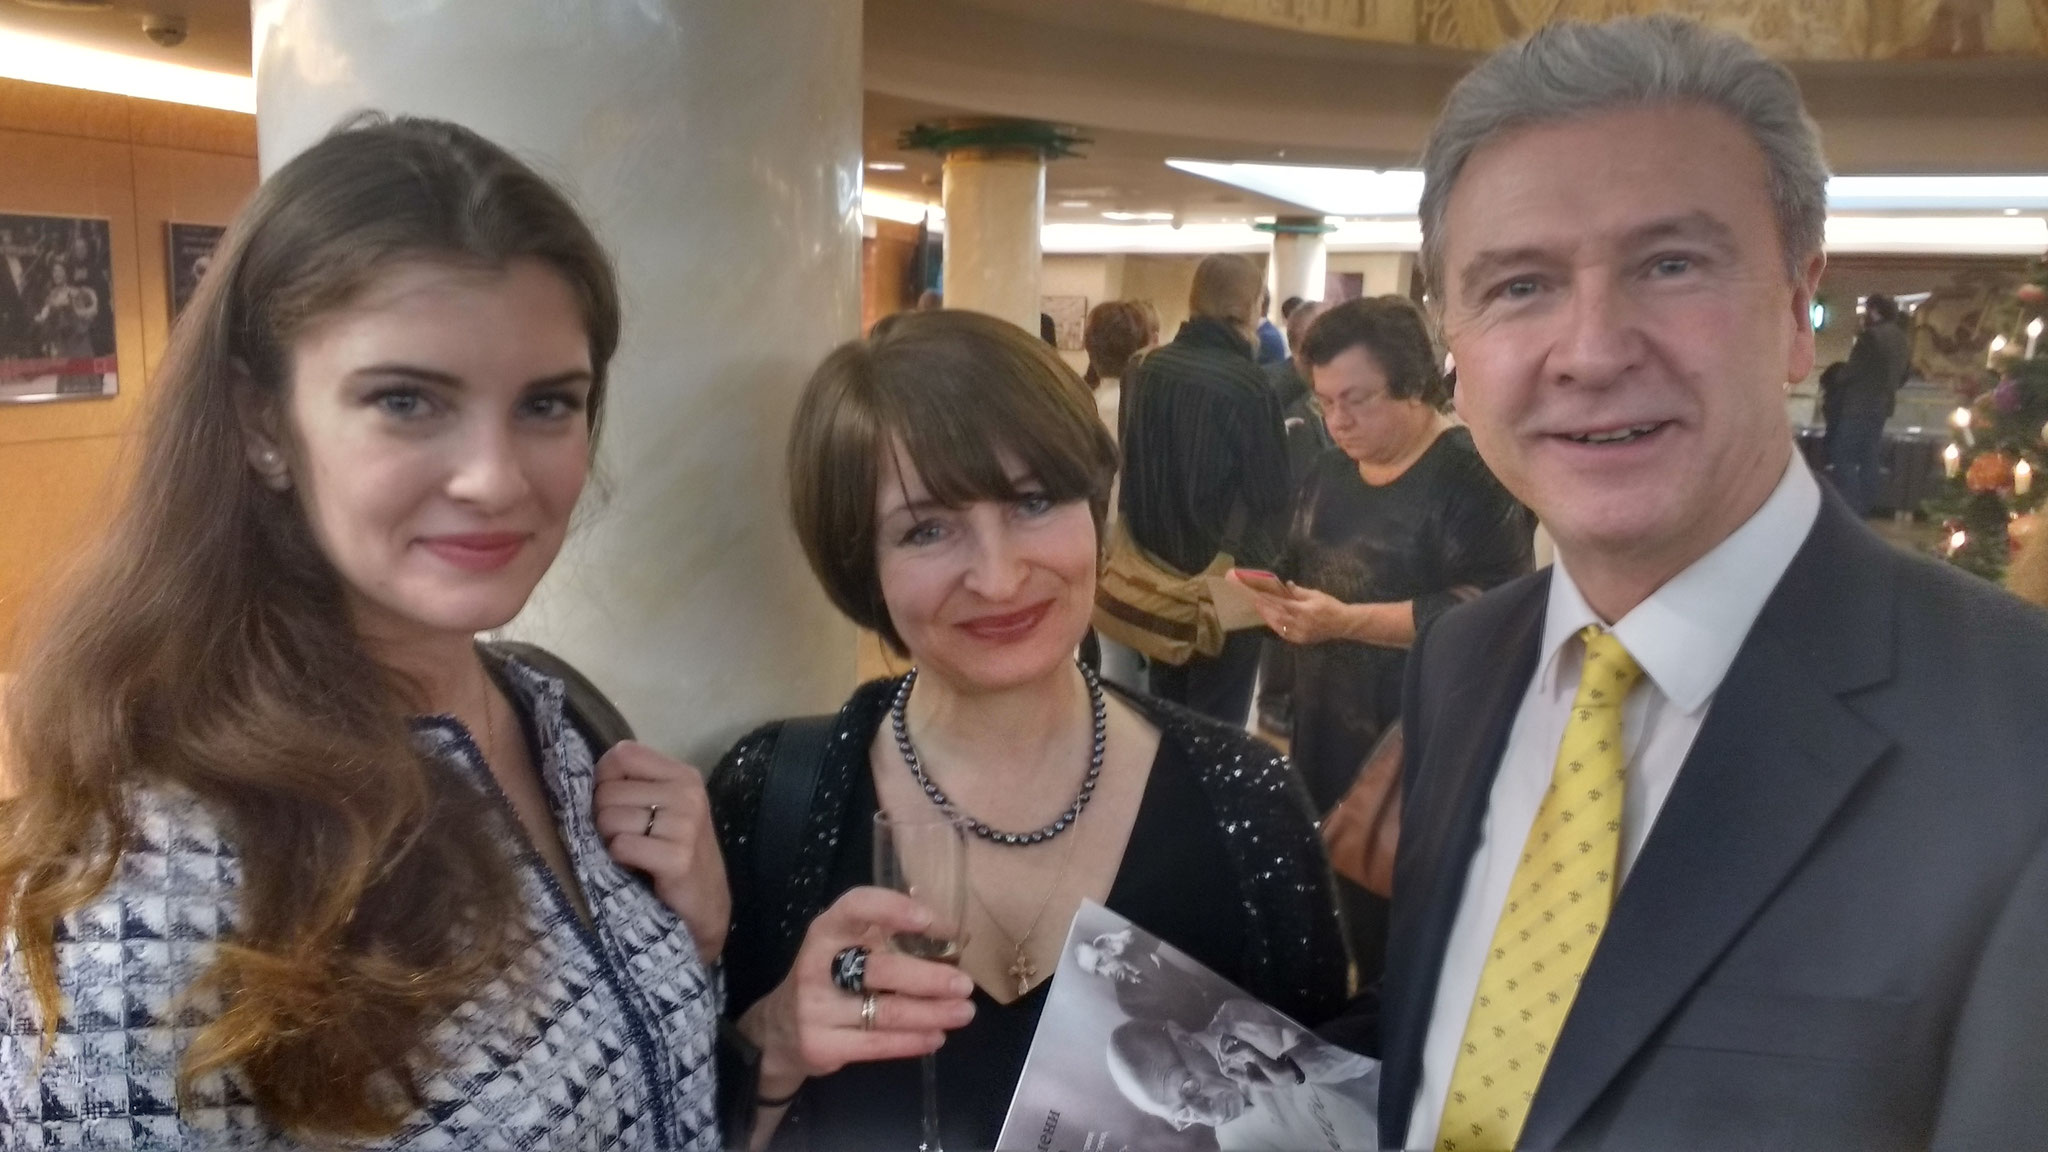 GG with Anastasia, Yuri (Igor's brother) Stravinsky's great-granddaughter - and her mother. Maryinsky Concert Hall, St. Petersburg. 02/Dec/16.